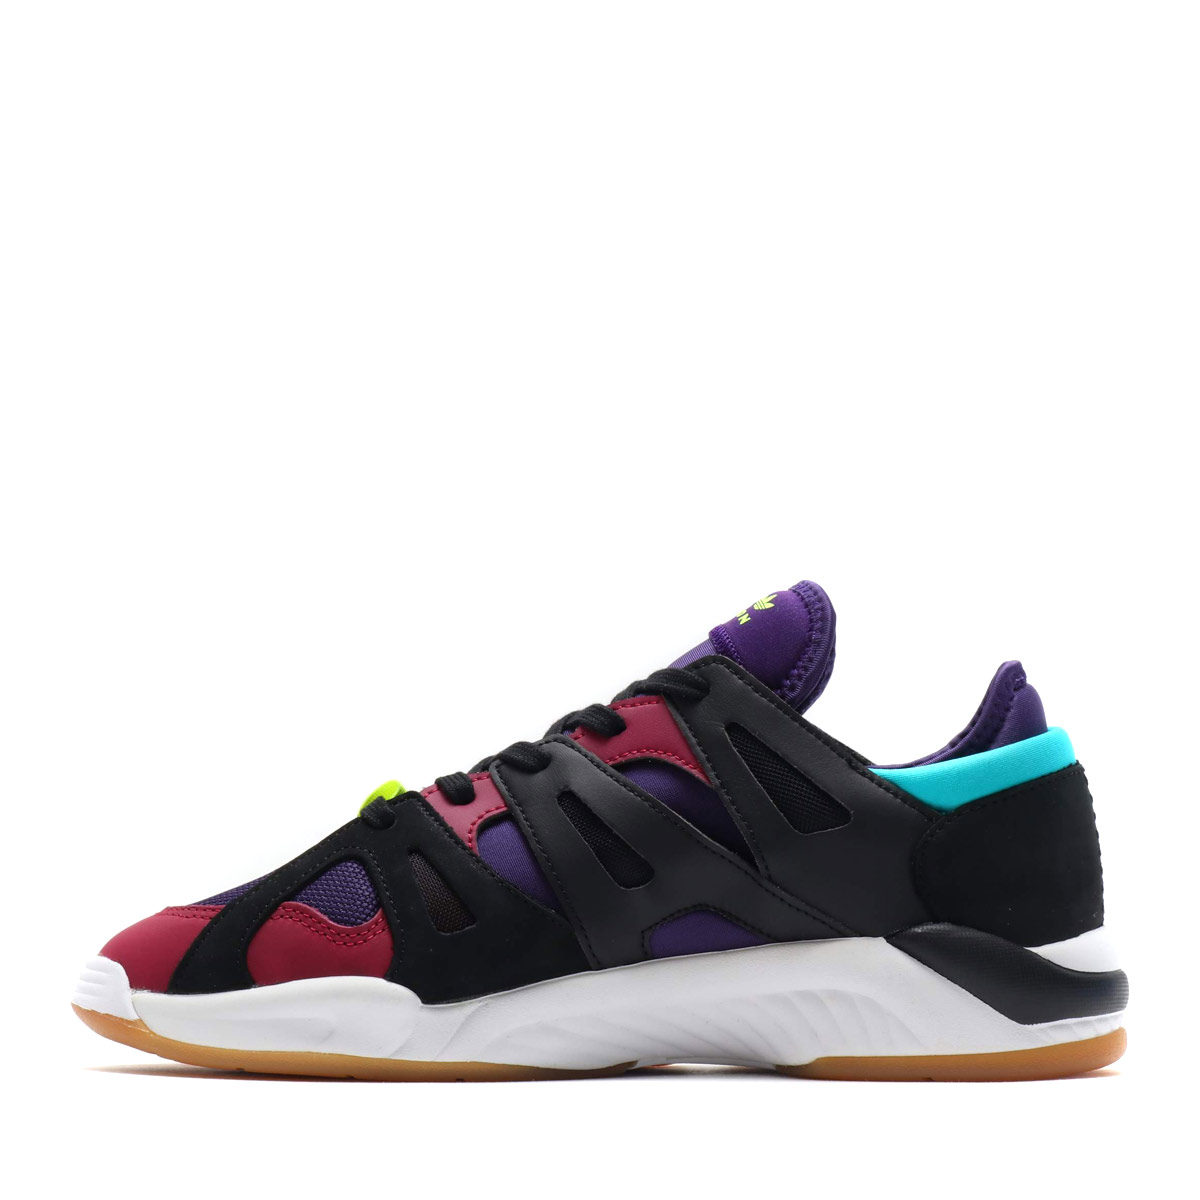 reputable site 1733d 56586 adidas Originals DIMENSION LO (Adidas originals dimension LO) CORE BLACKDARK  PURPLEMYSTERY RUBY 18FW-I